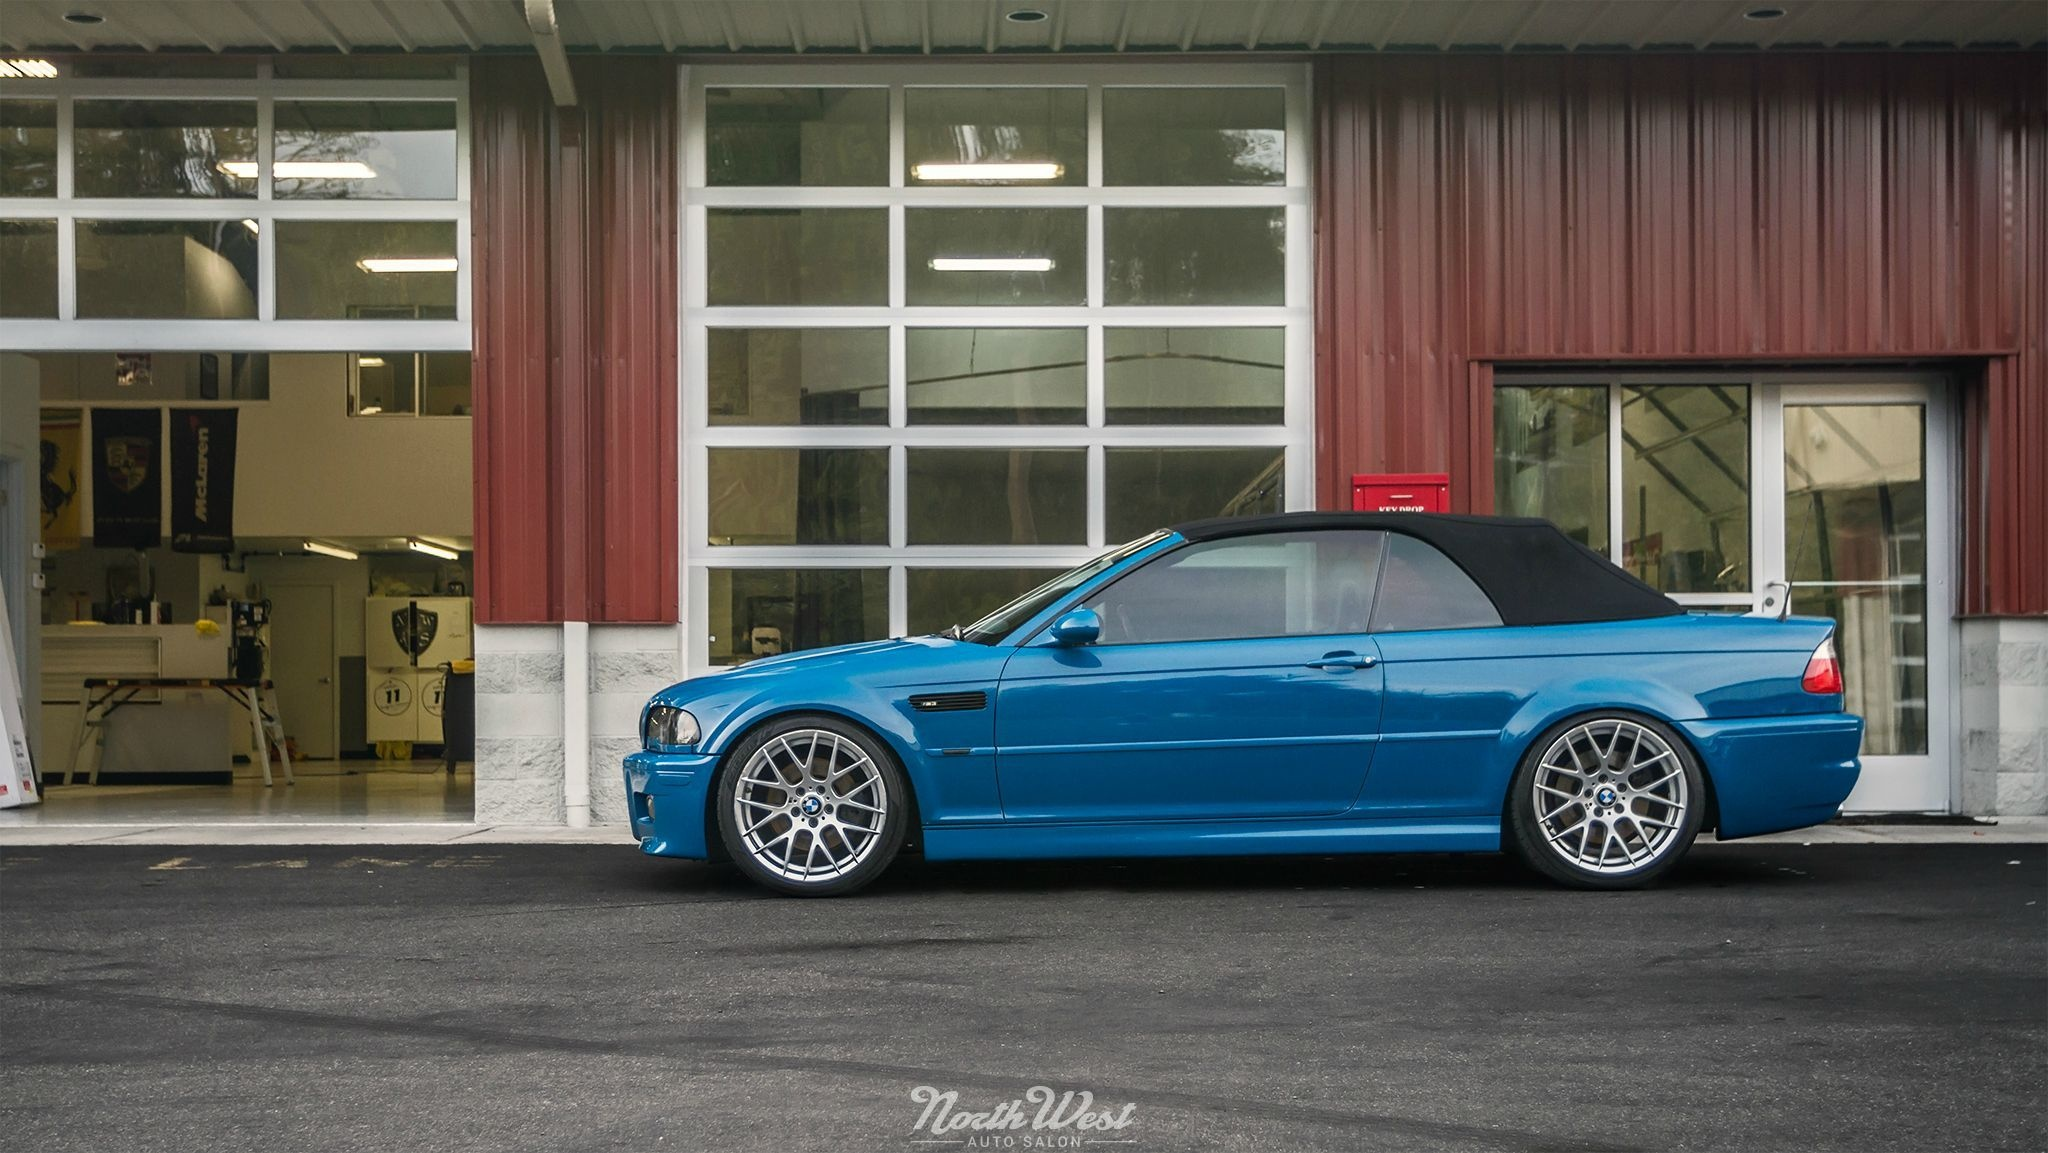 Modified E46 Coupe New Bmw E46 M3 Cabrio Bmw Pinterest E46 M3 Bmw E46 and Bmw Of Beautiful Modified E46 Coupe